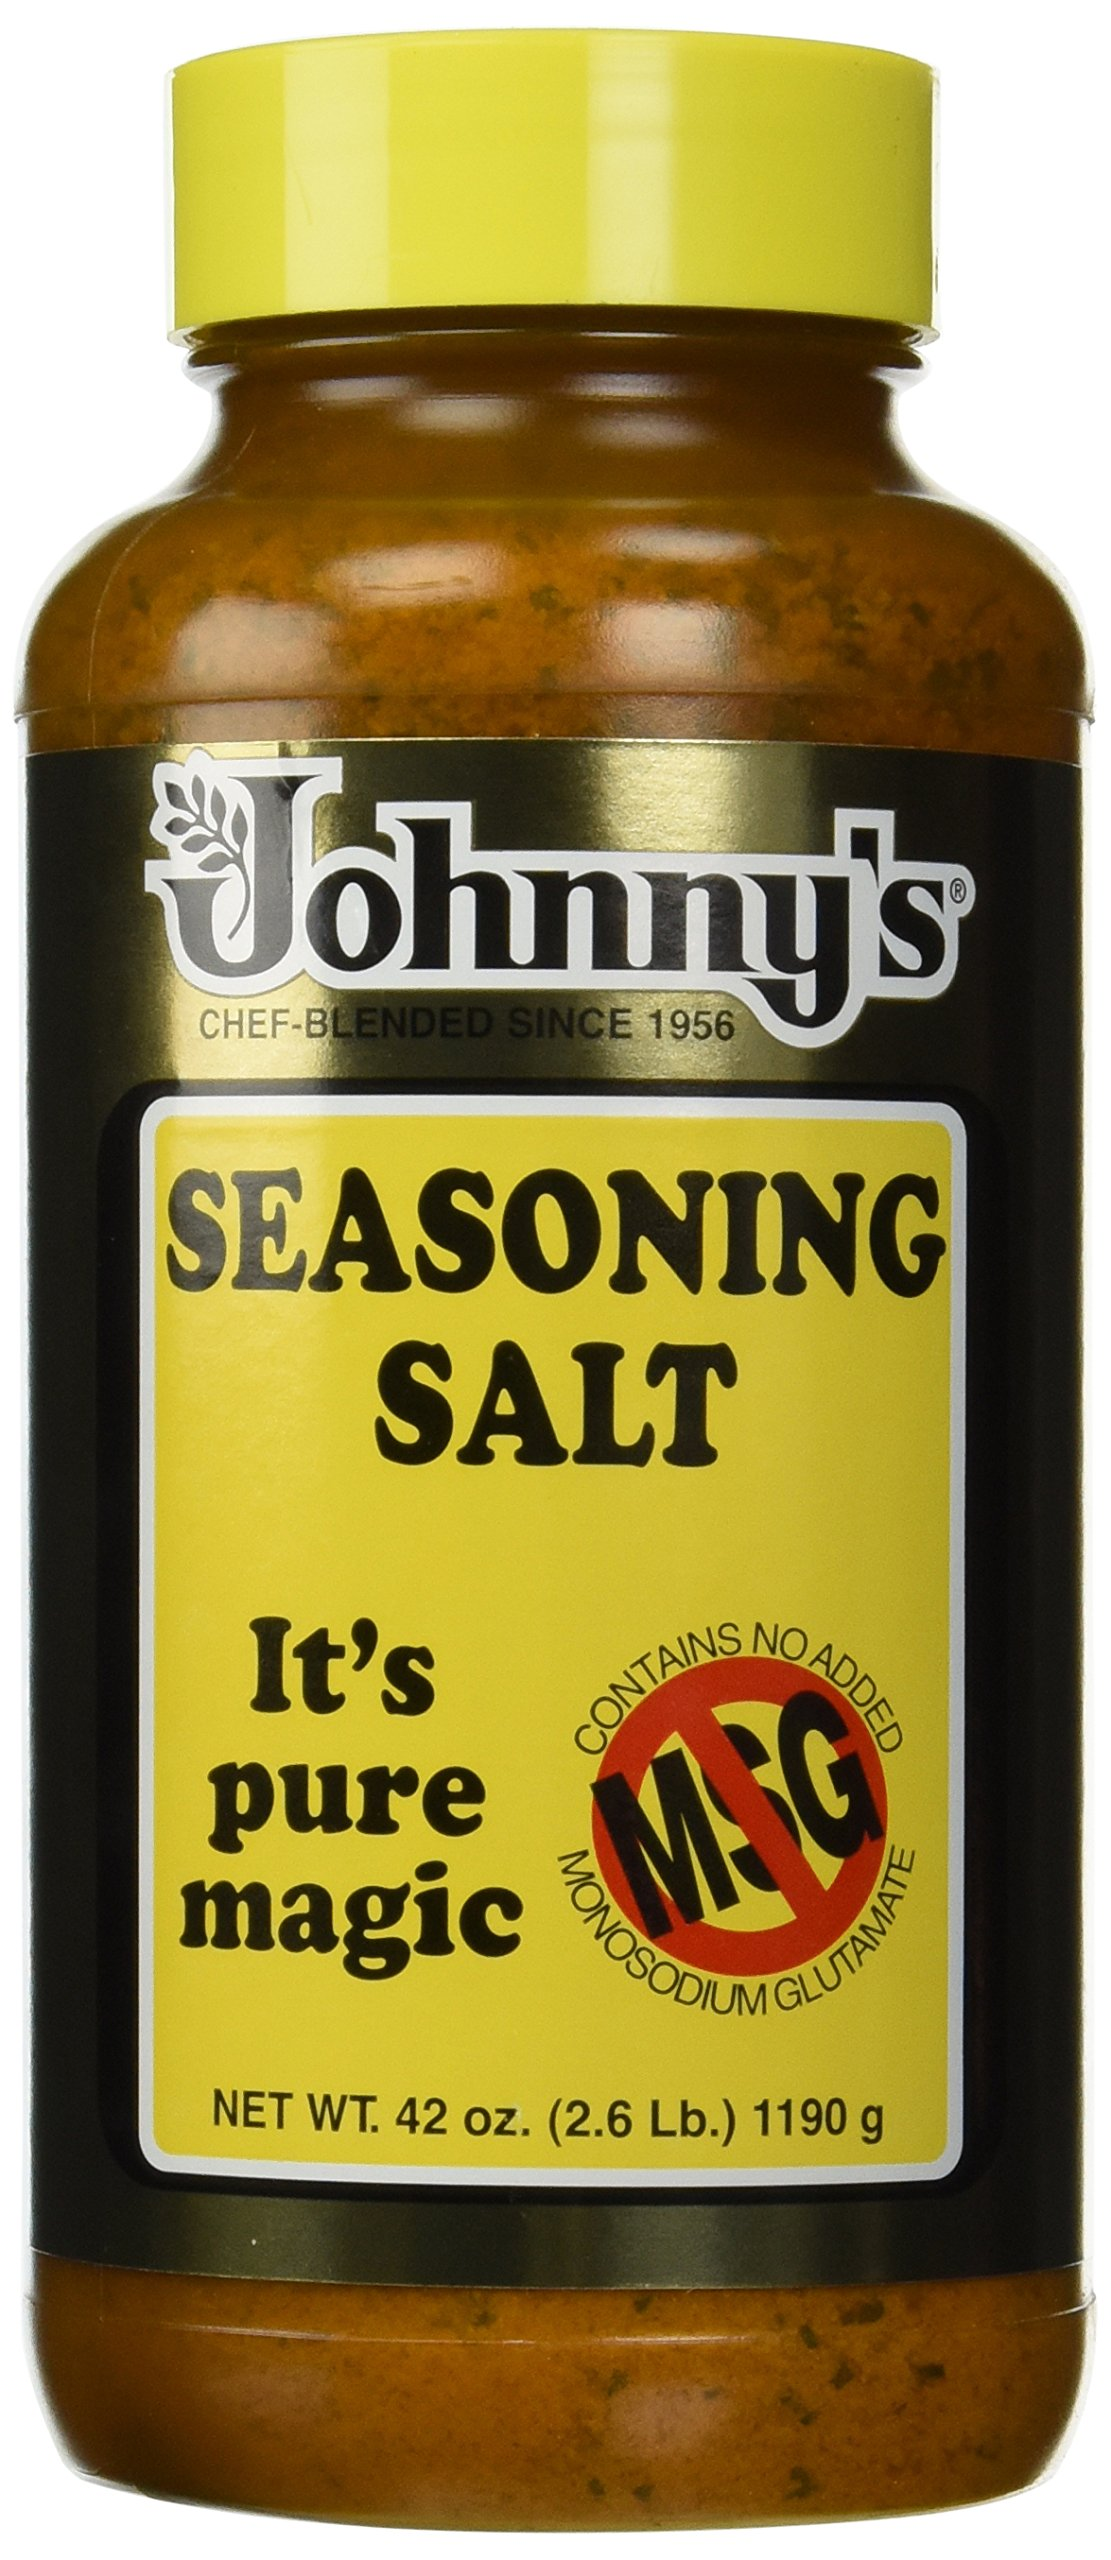 Johnny's Seasoning Salt , NO MSG 42-Ounce Bottle(Pack of 2) by Johnny's (Image #1)